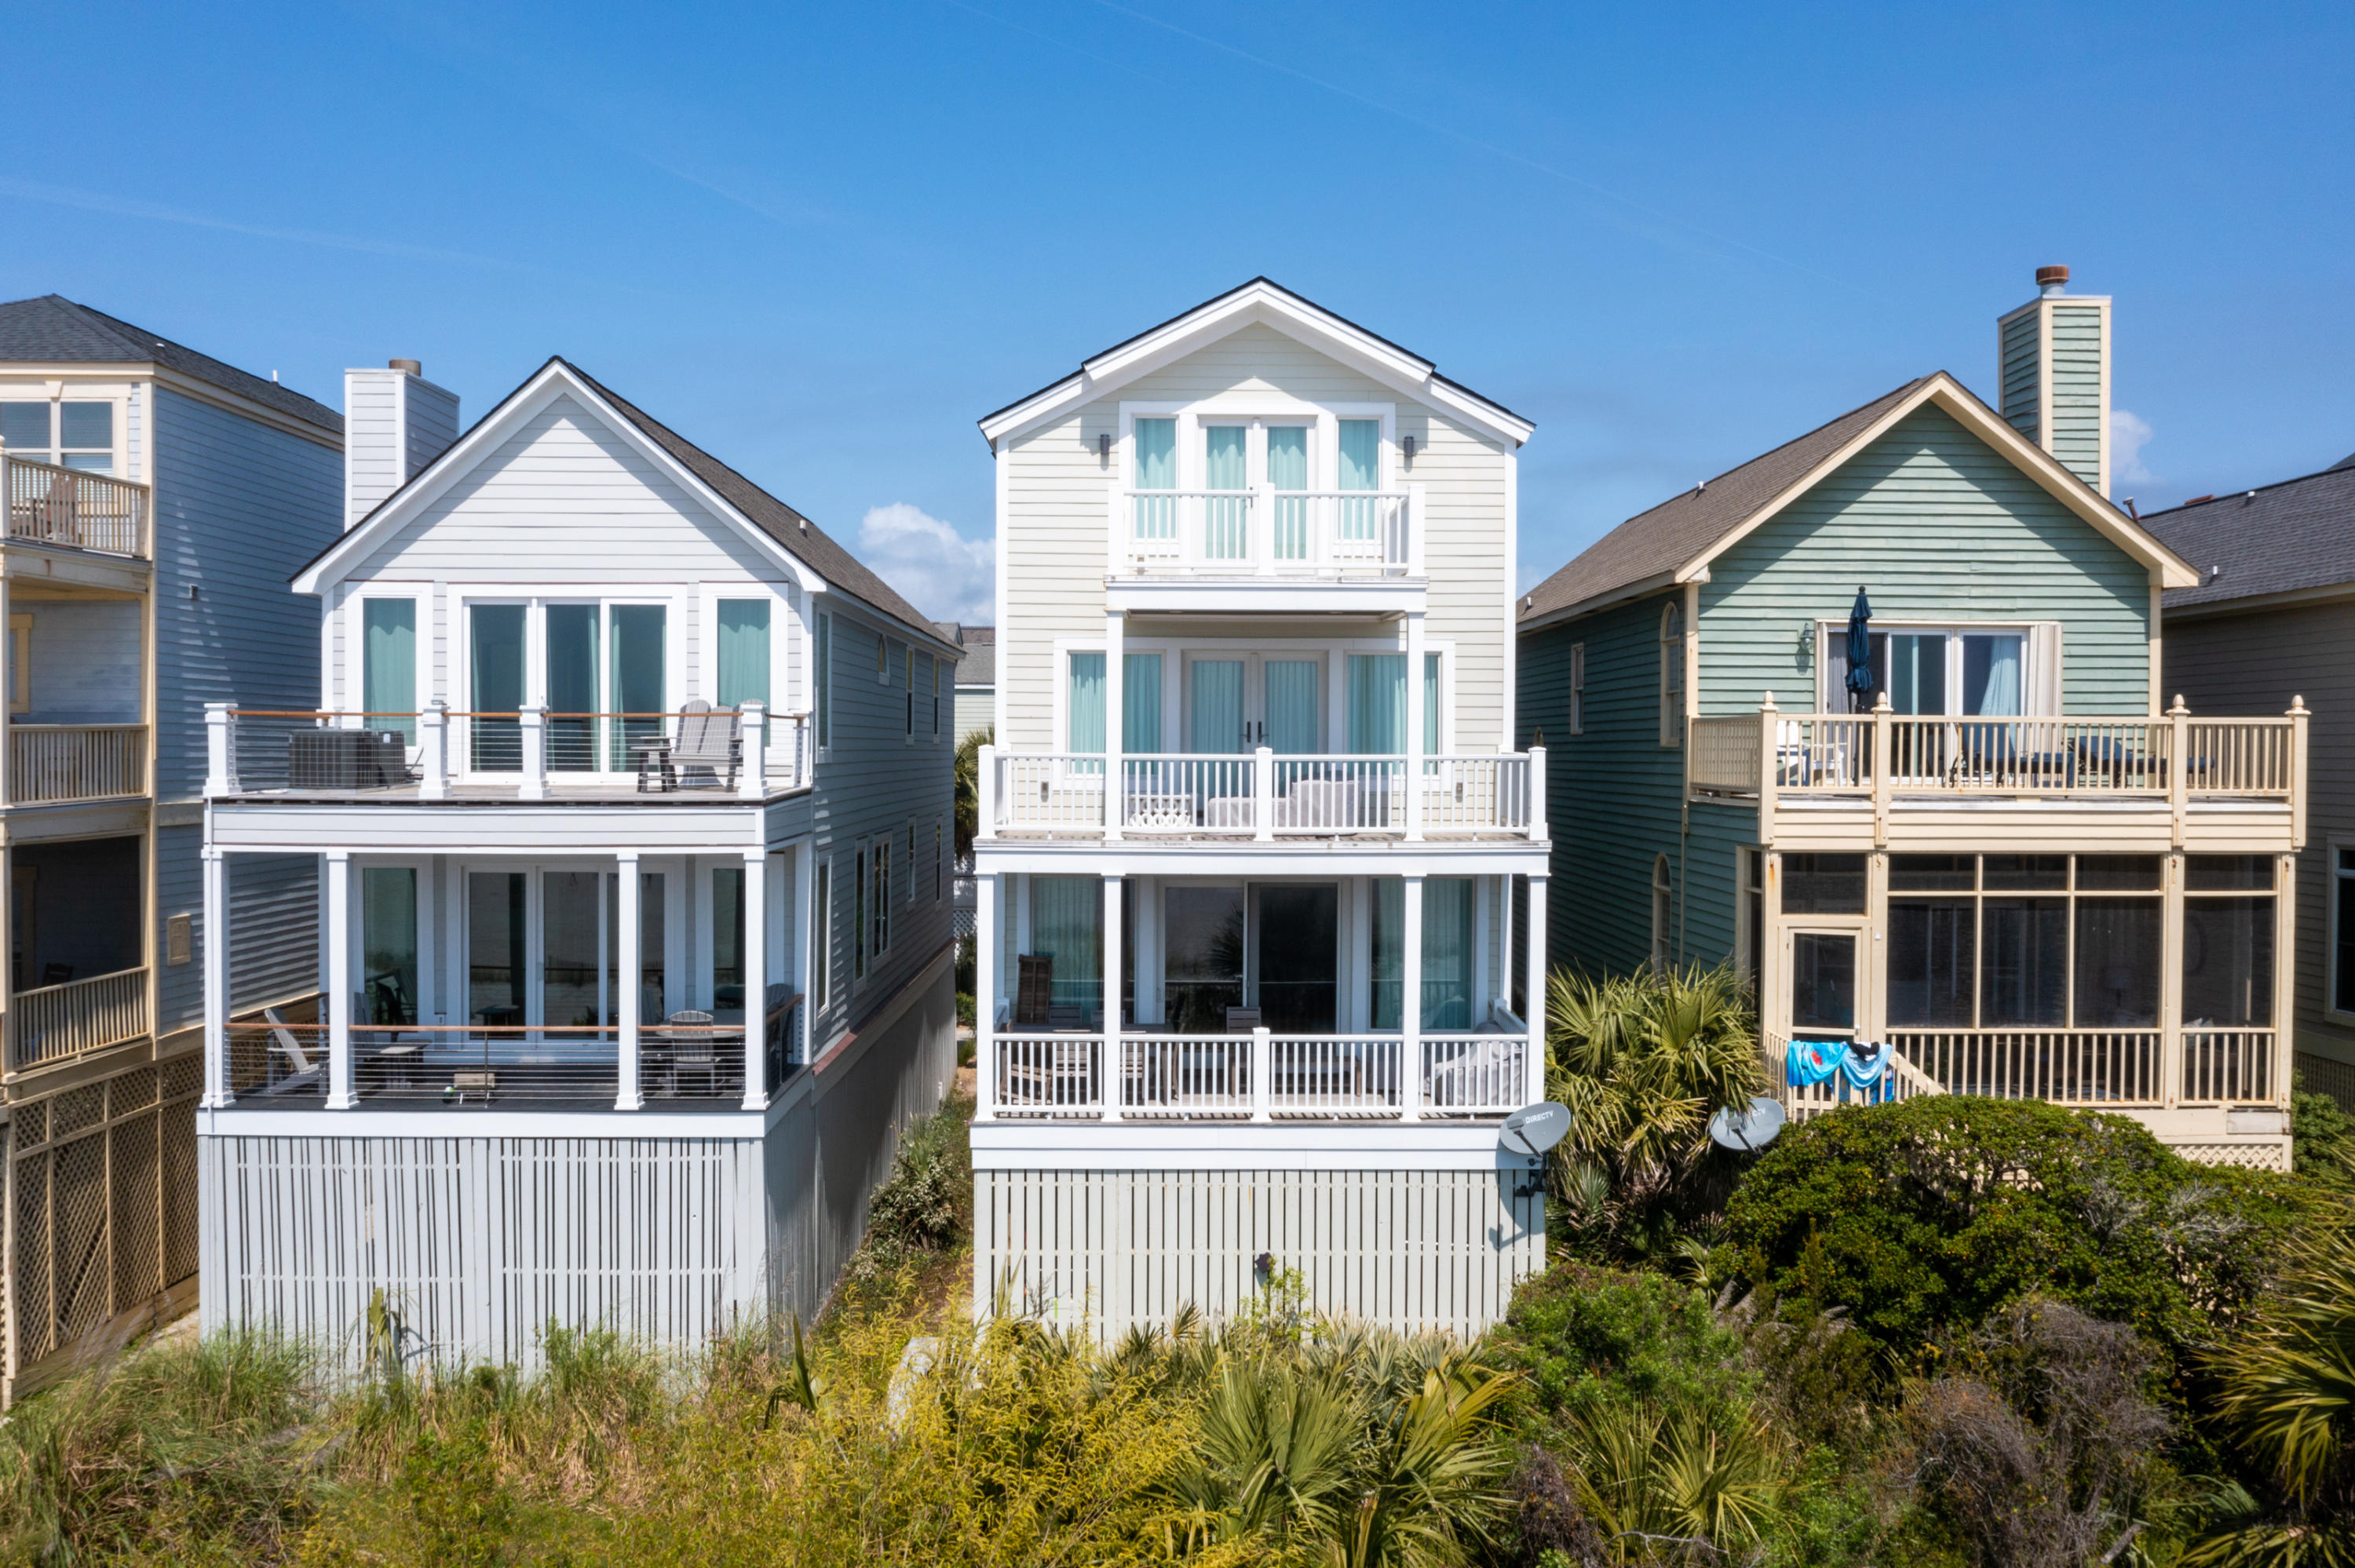 Wild Dunes Homes For Sale - 59 Grand Pavilion, Isle of Palms, SC - 49